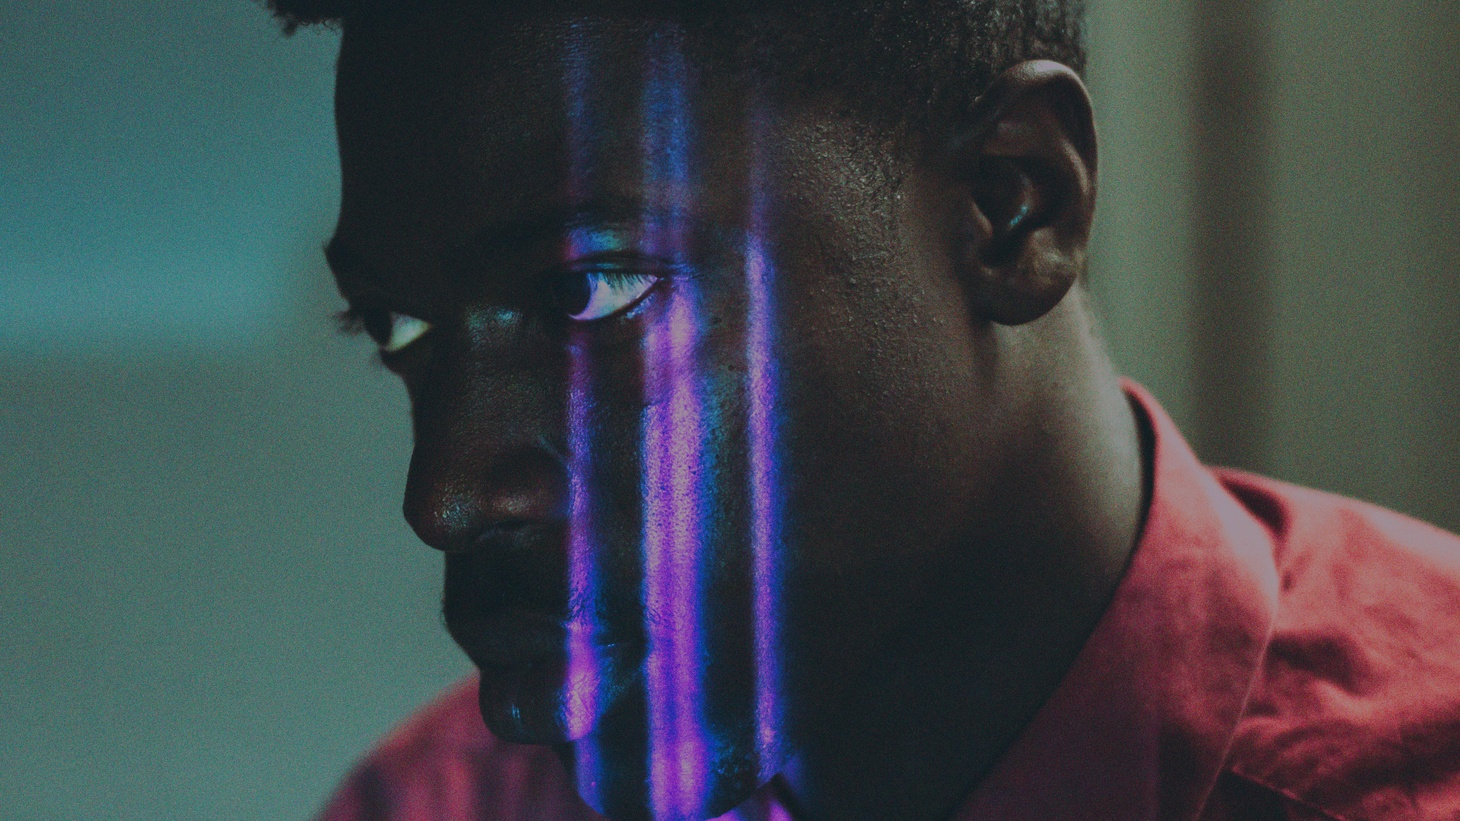 Following an enchanting performance at KCRW's showcase at SXSW last month, the prolific Moses Sumney has released another impeccable song.